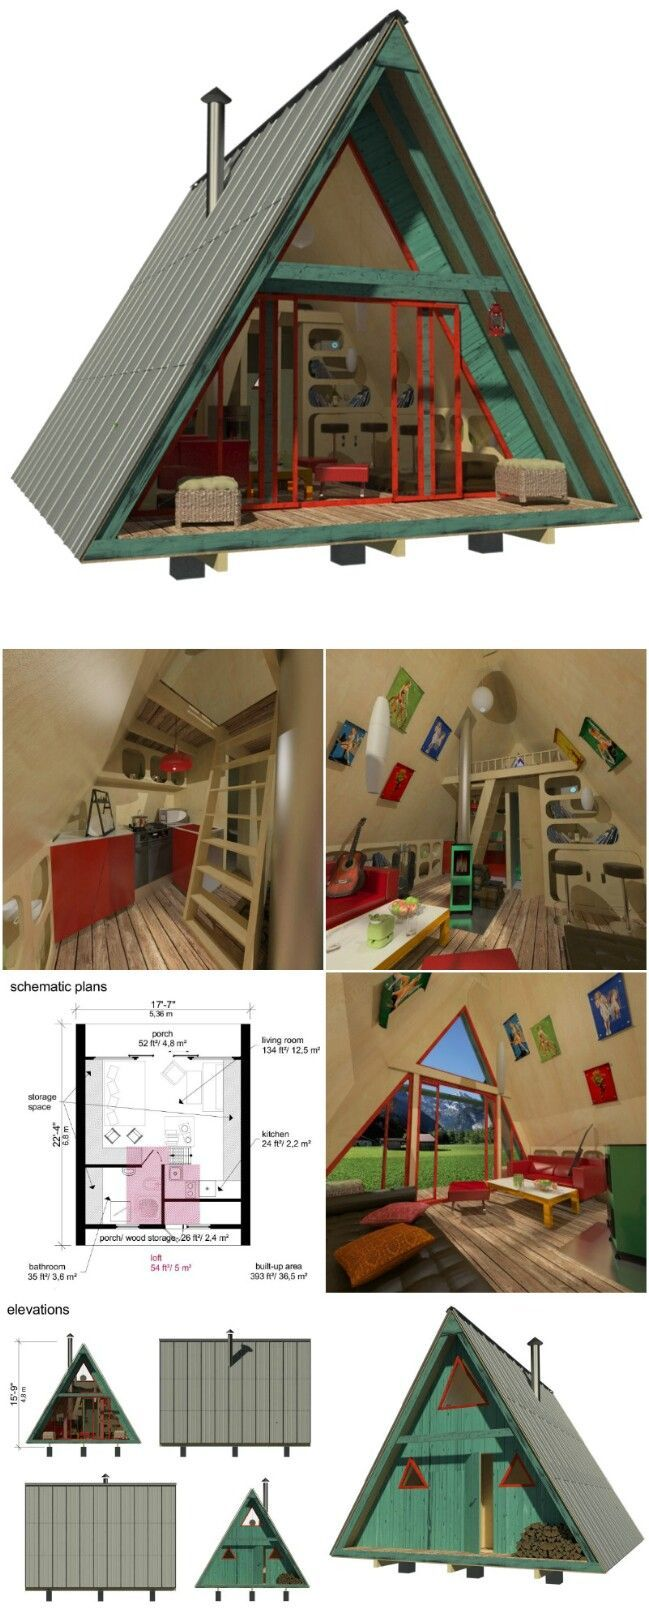 25 Plans To Build Your Own Fully Customized Tiny House On A Budget Tiny House Cabin Tiny House Plans A Frame Cabin